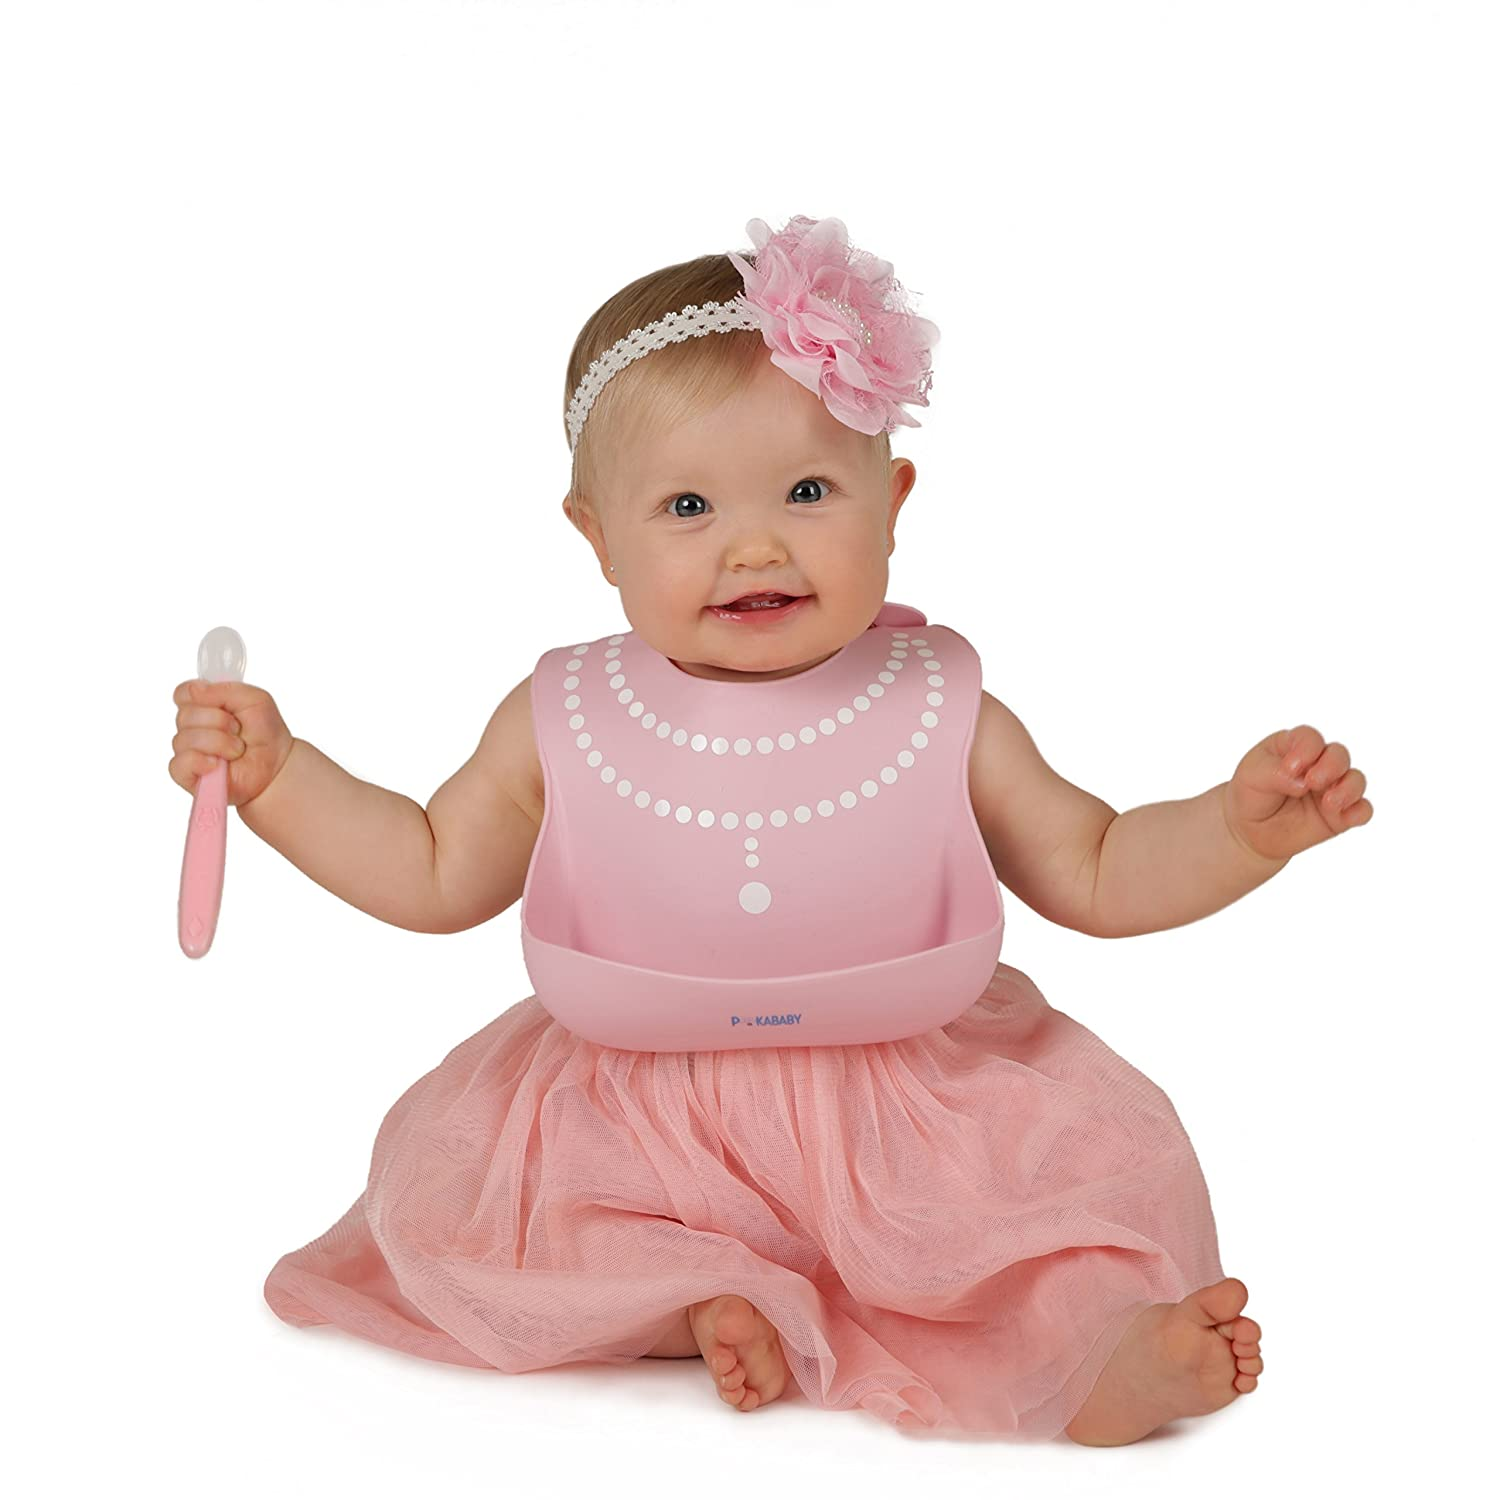 Waterproof Bibs for Toddlers - Silicone Baby Bib – Easy to Clean Feeding Bib - Soft, Comfortable, and Adjustable - Fits Up to 6 Years Old (Pink Pearl)